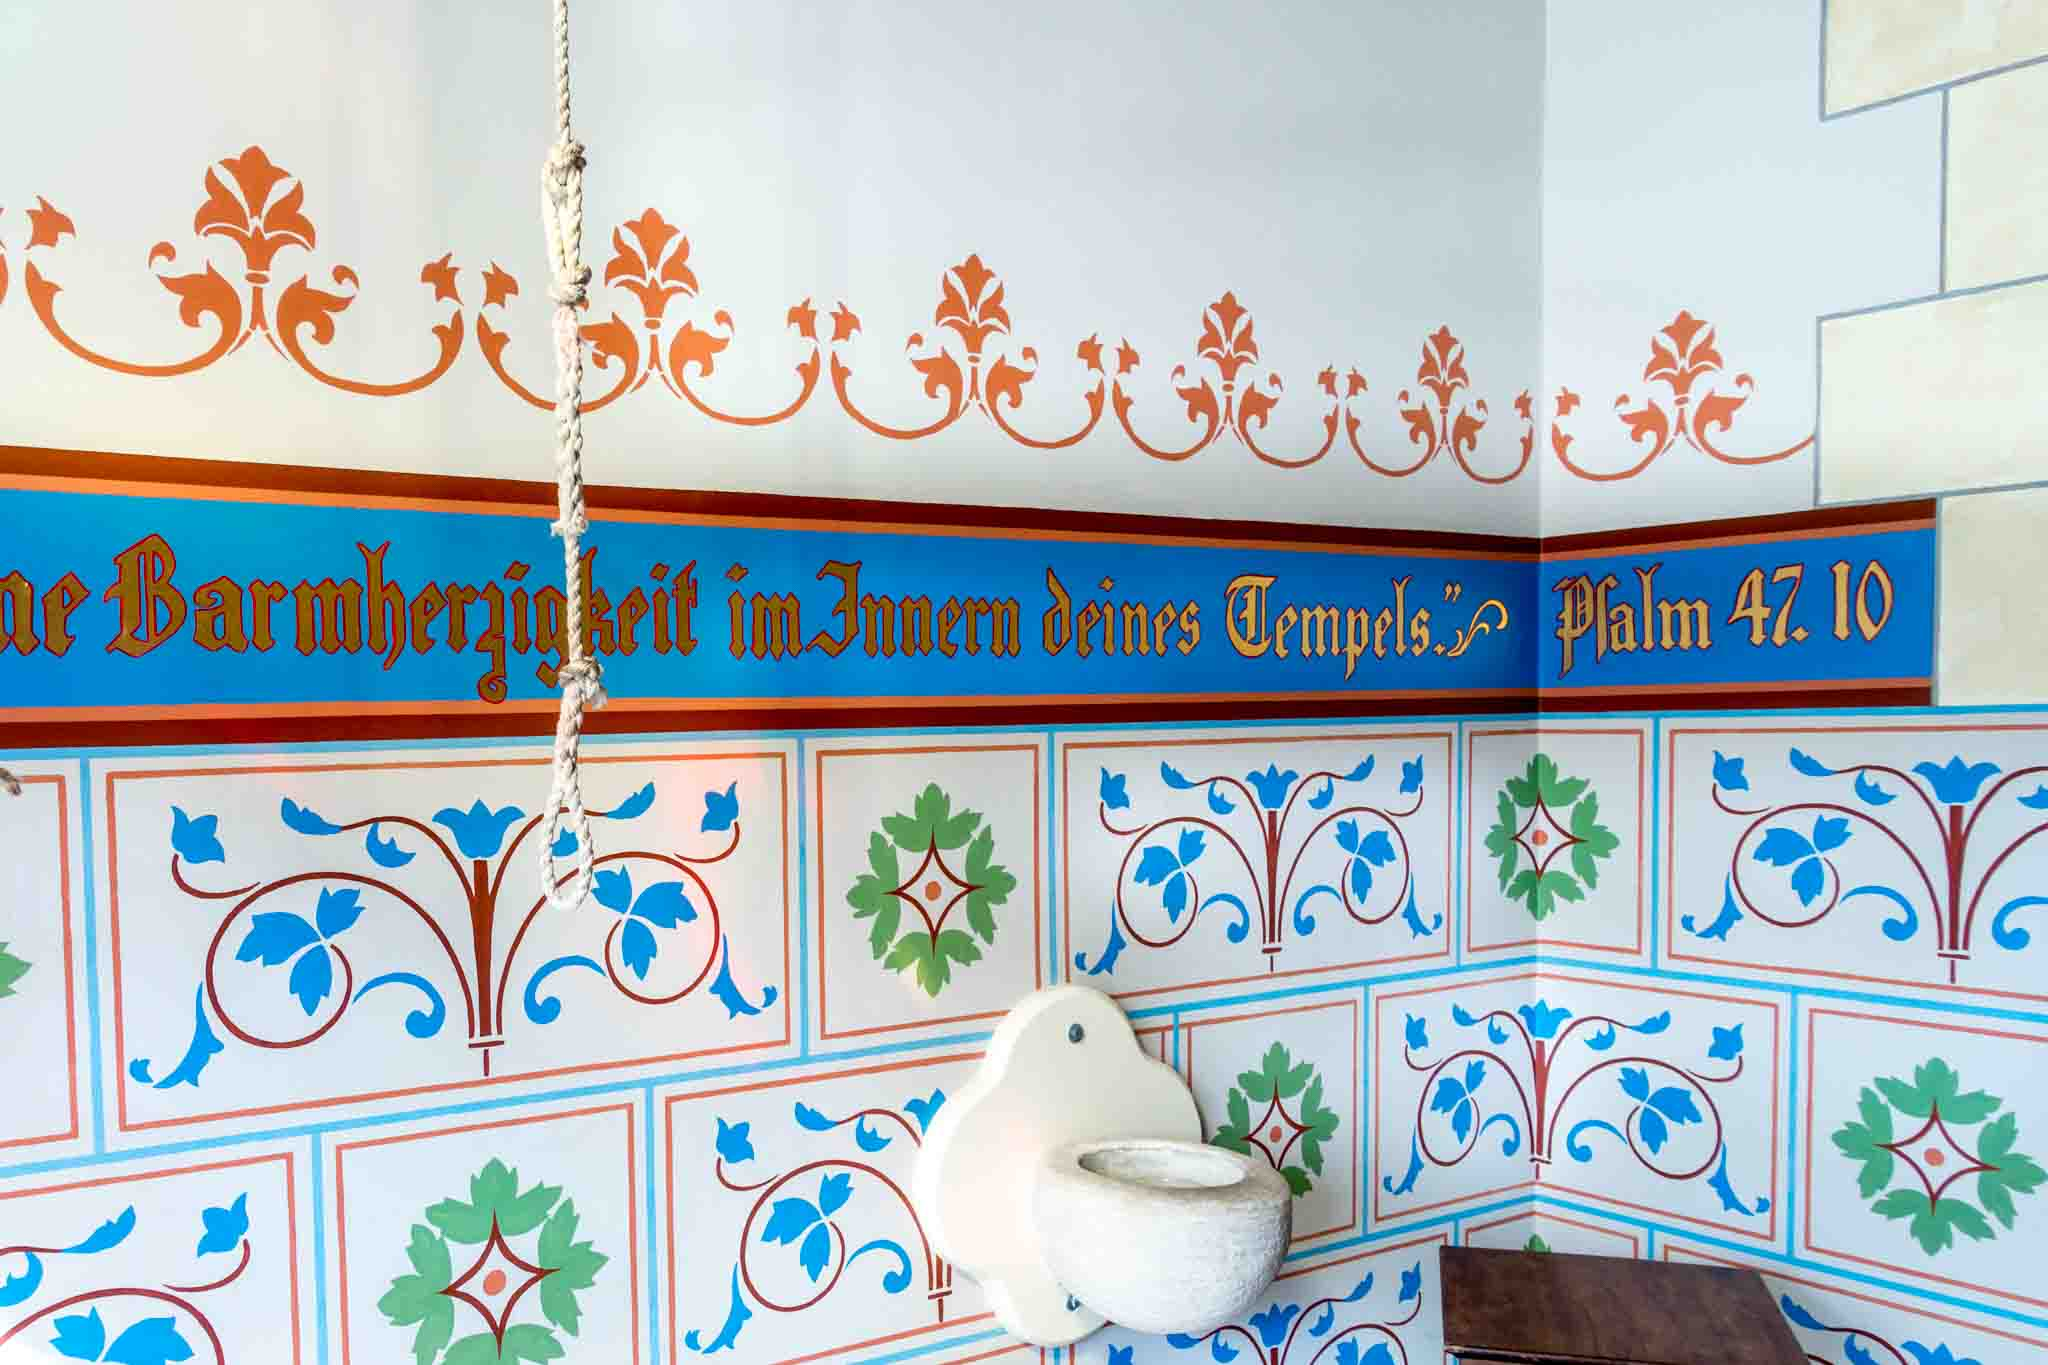 Bible verses in German in the vestibule of St. Mary's Catholic Church, one of the Texas painted churches Schulenburg